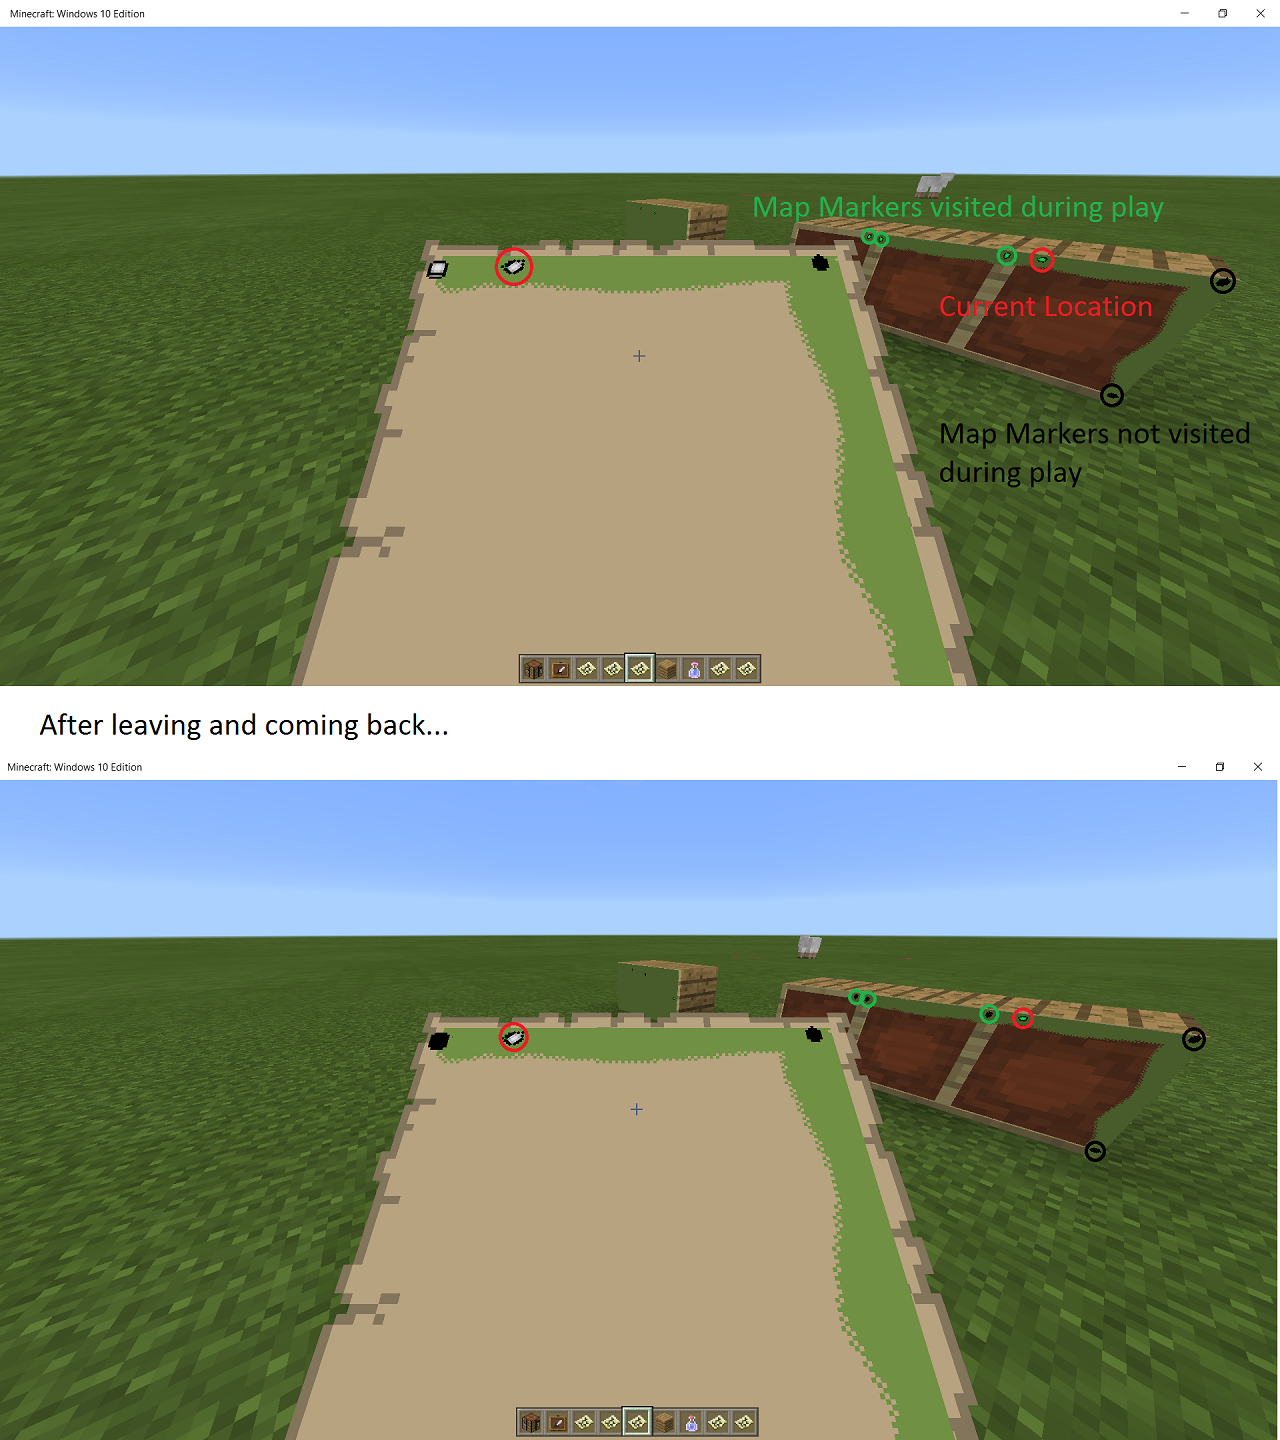 MCPE-14015] Map Markers far from the player's location disappear